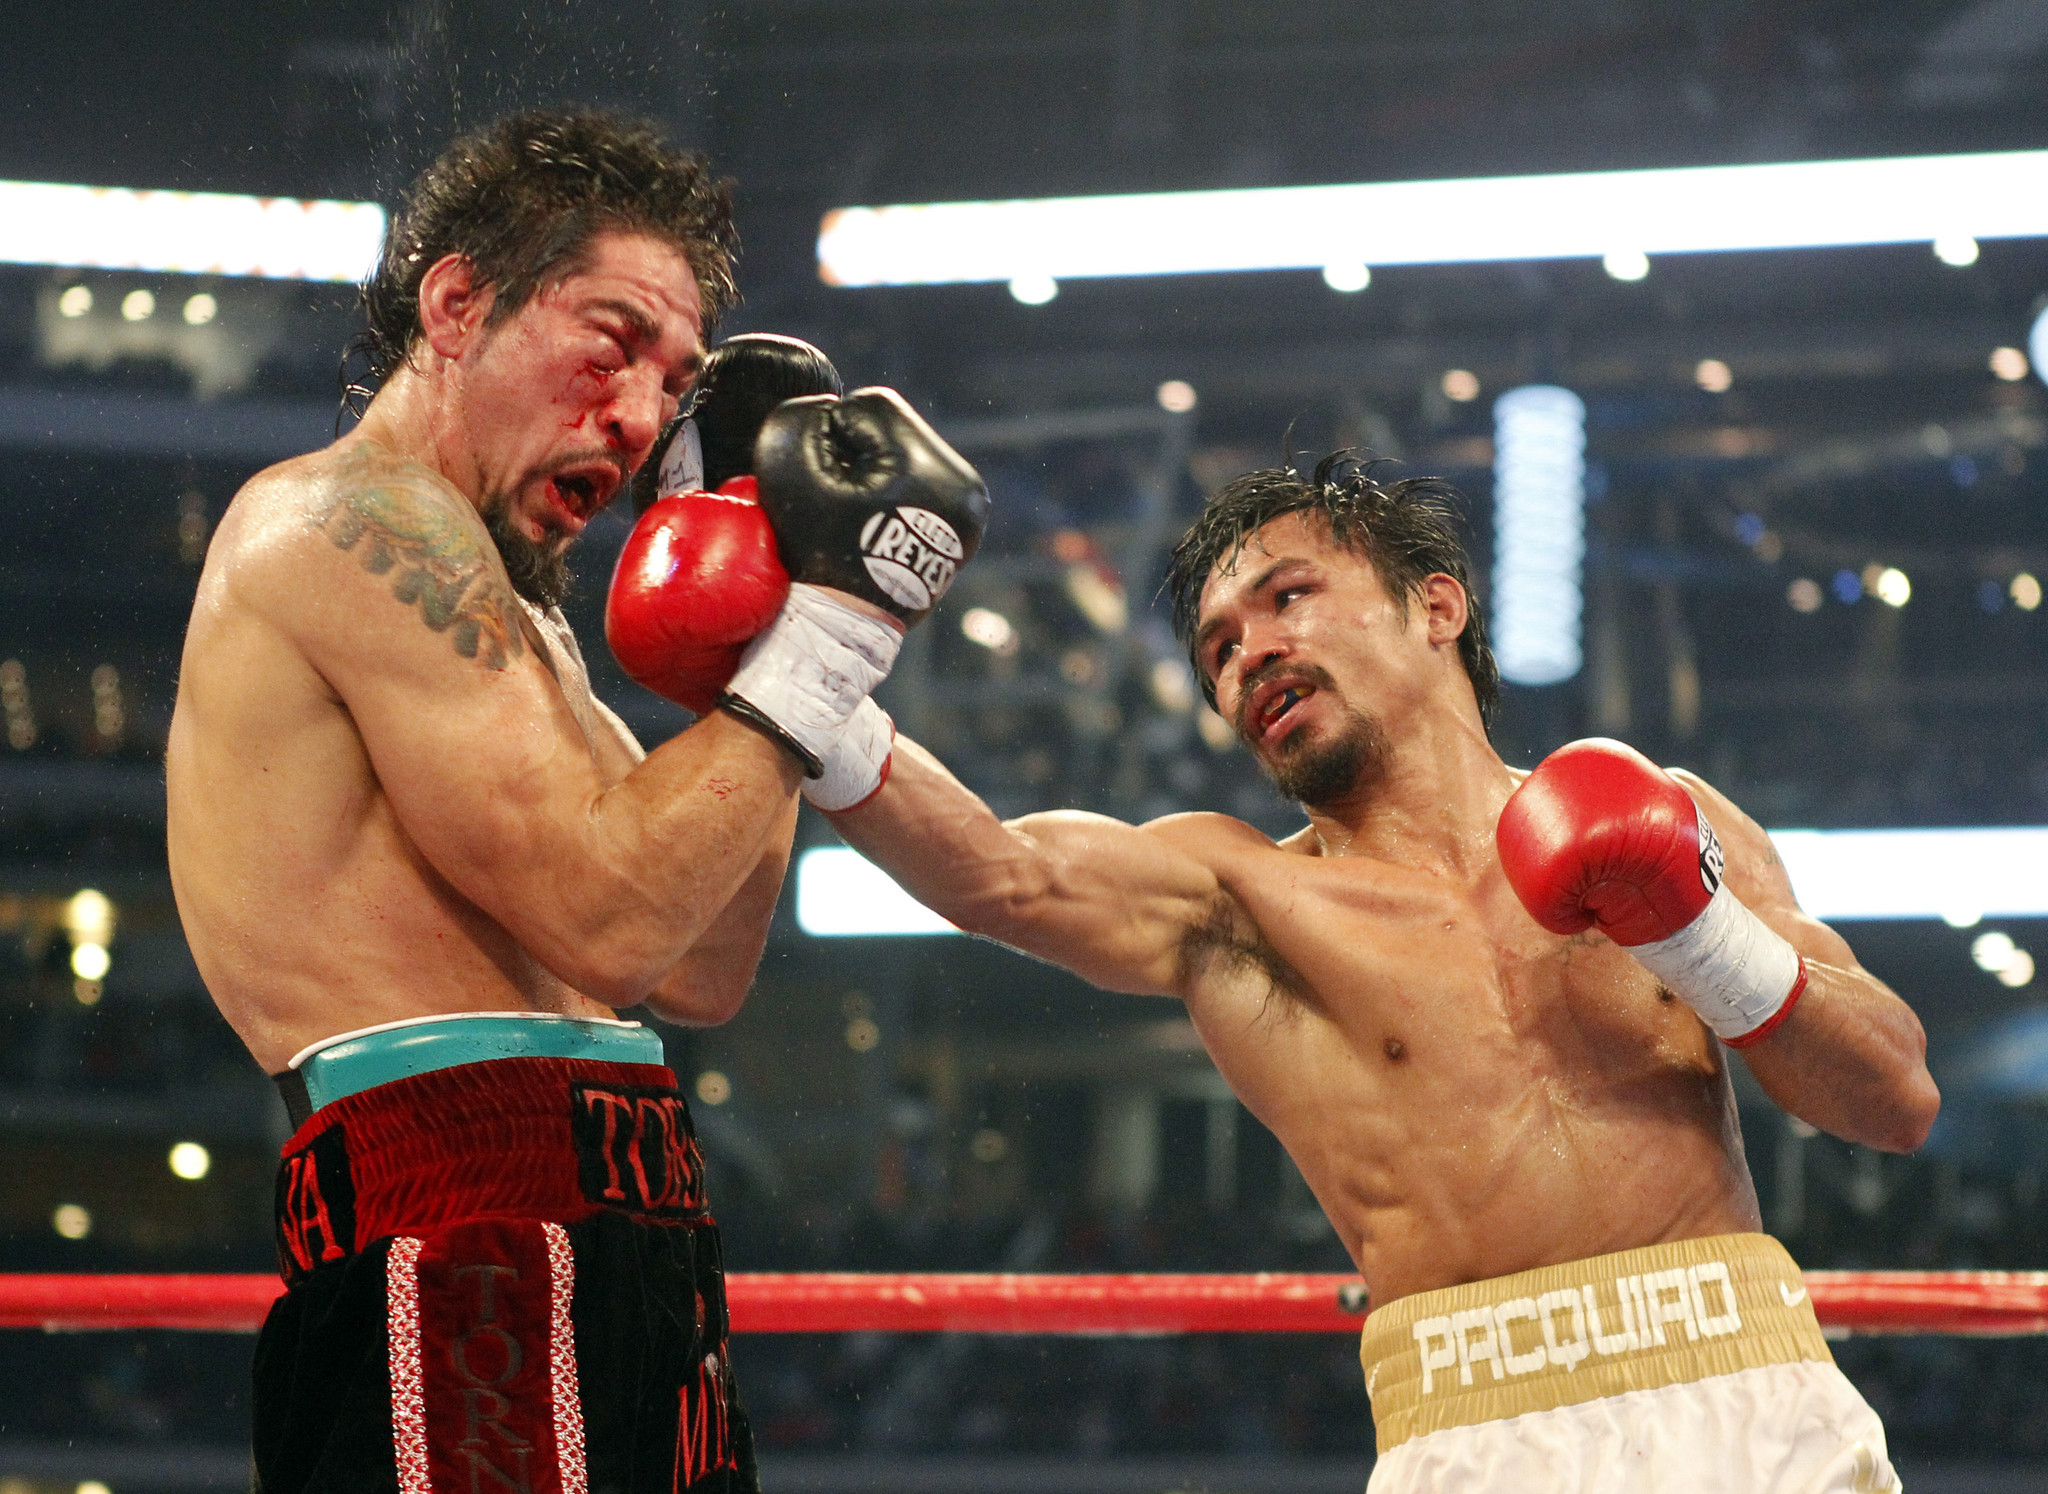 Manny Pacquiao Simply Best Boxer additionally 67413 furthermore La Sp Sn Manny Pacquiao Antonio Margarito 20150309 Story additionally Guest Review Megan Anderson Fight Quality furthermore Manny Pacquiao Journey Greatness. on oscar de la hoya fights